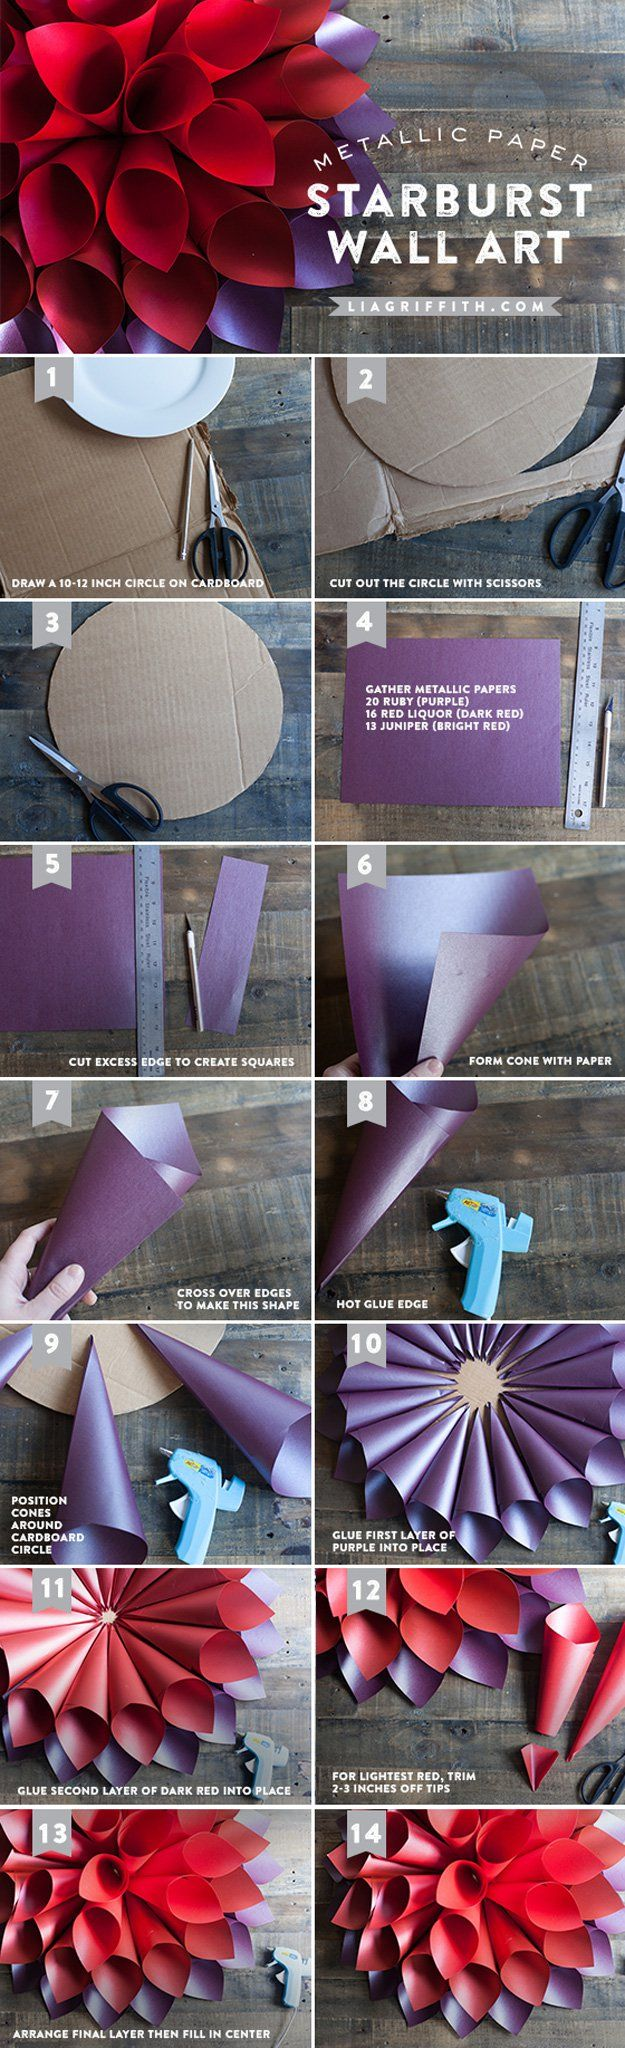 Wall art easy diy crafts fun projects and easy